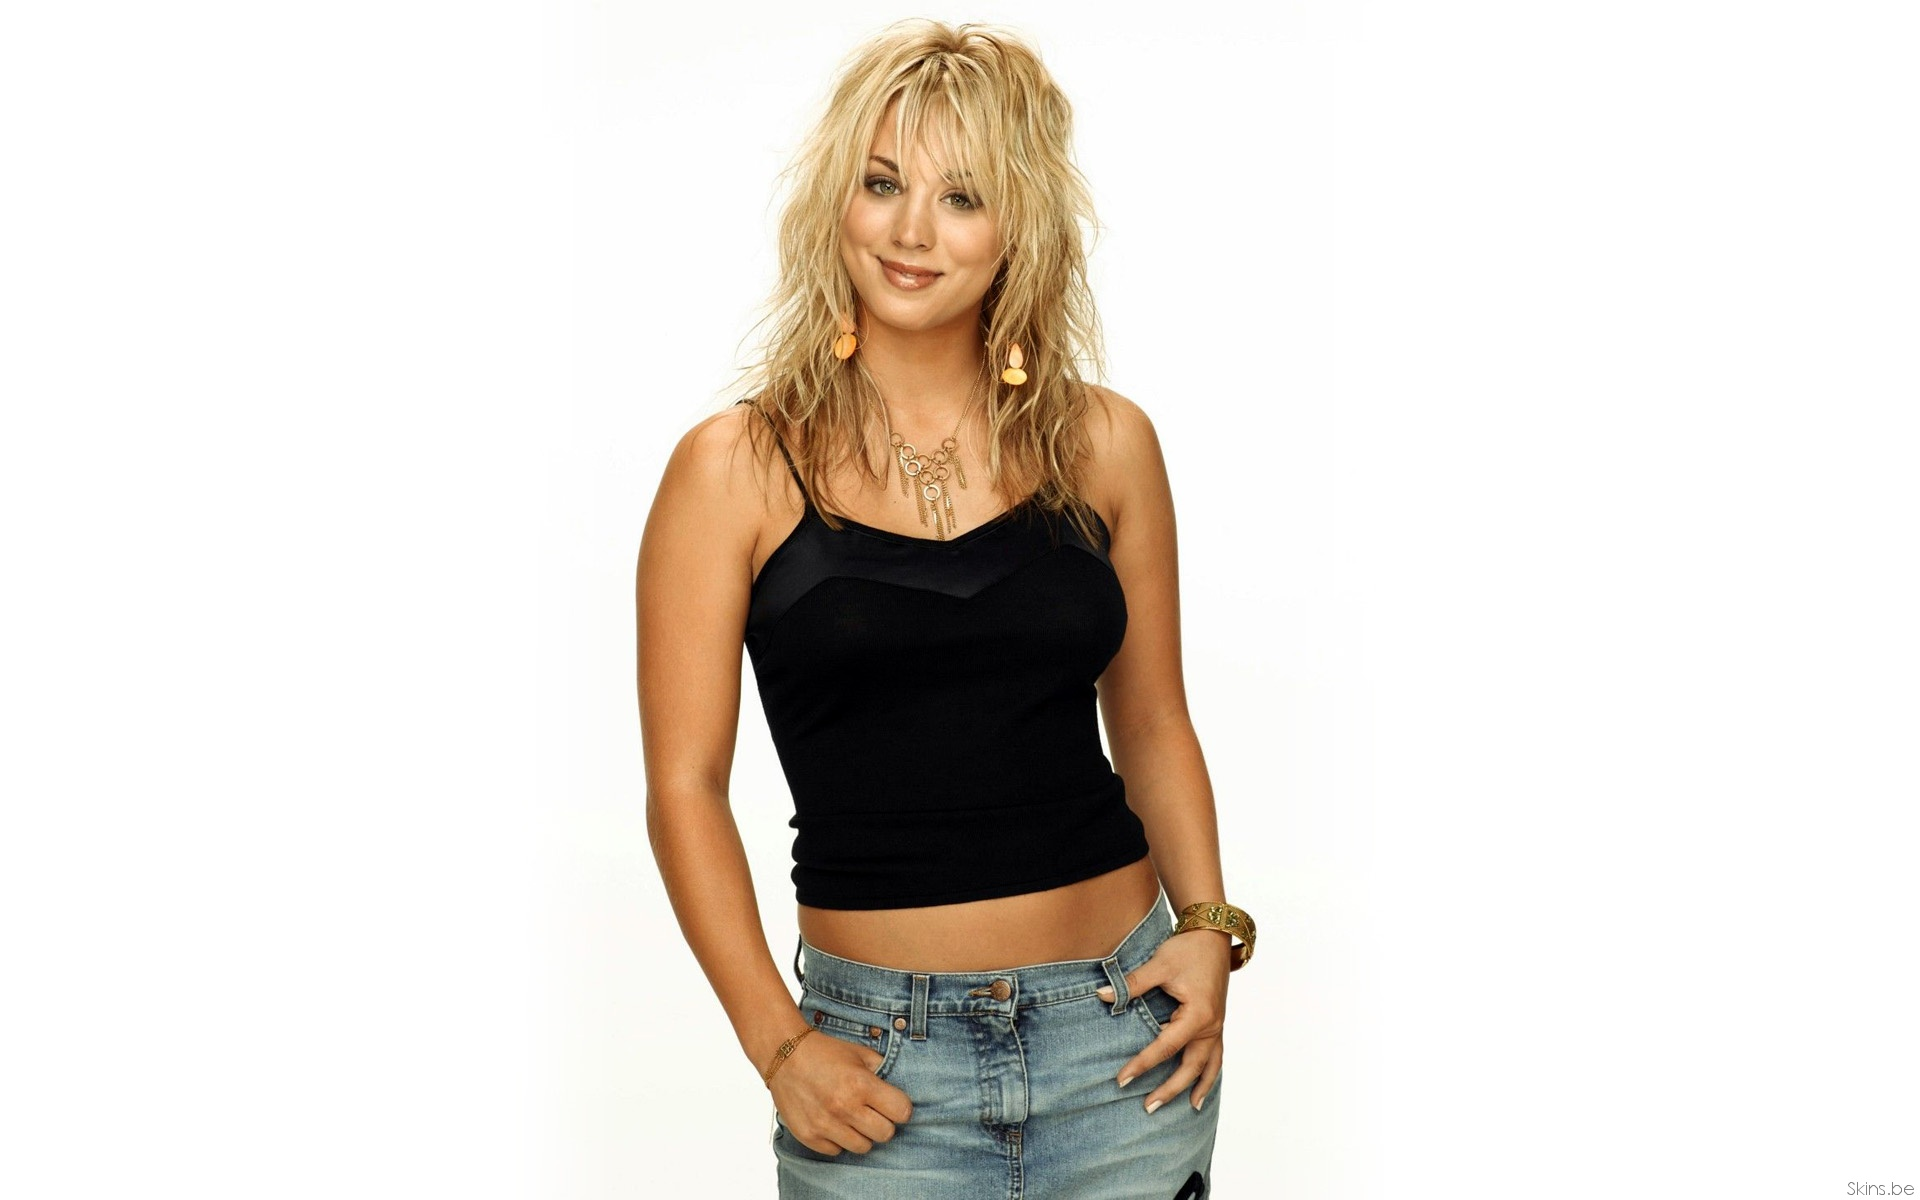 kaley cuoco wallpapers, pictures, images